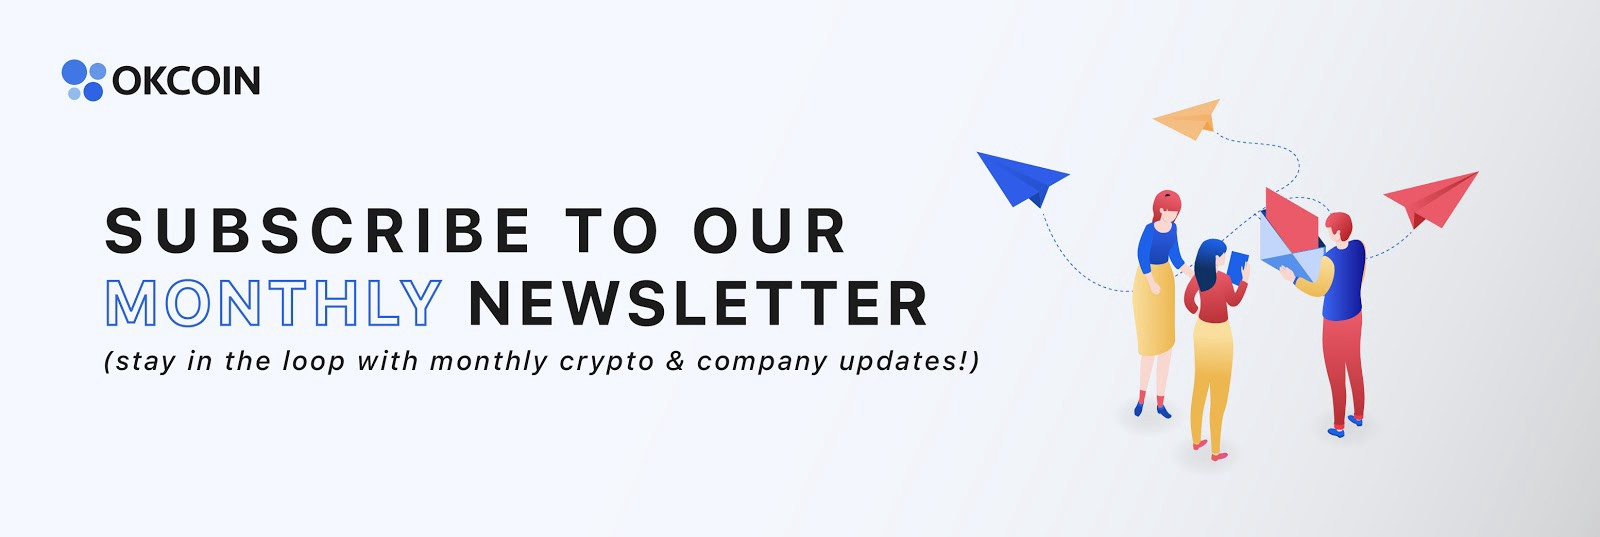 crypto news roundup - newsletter sign up